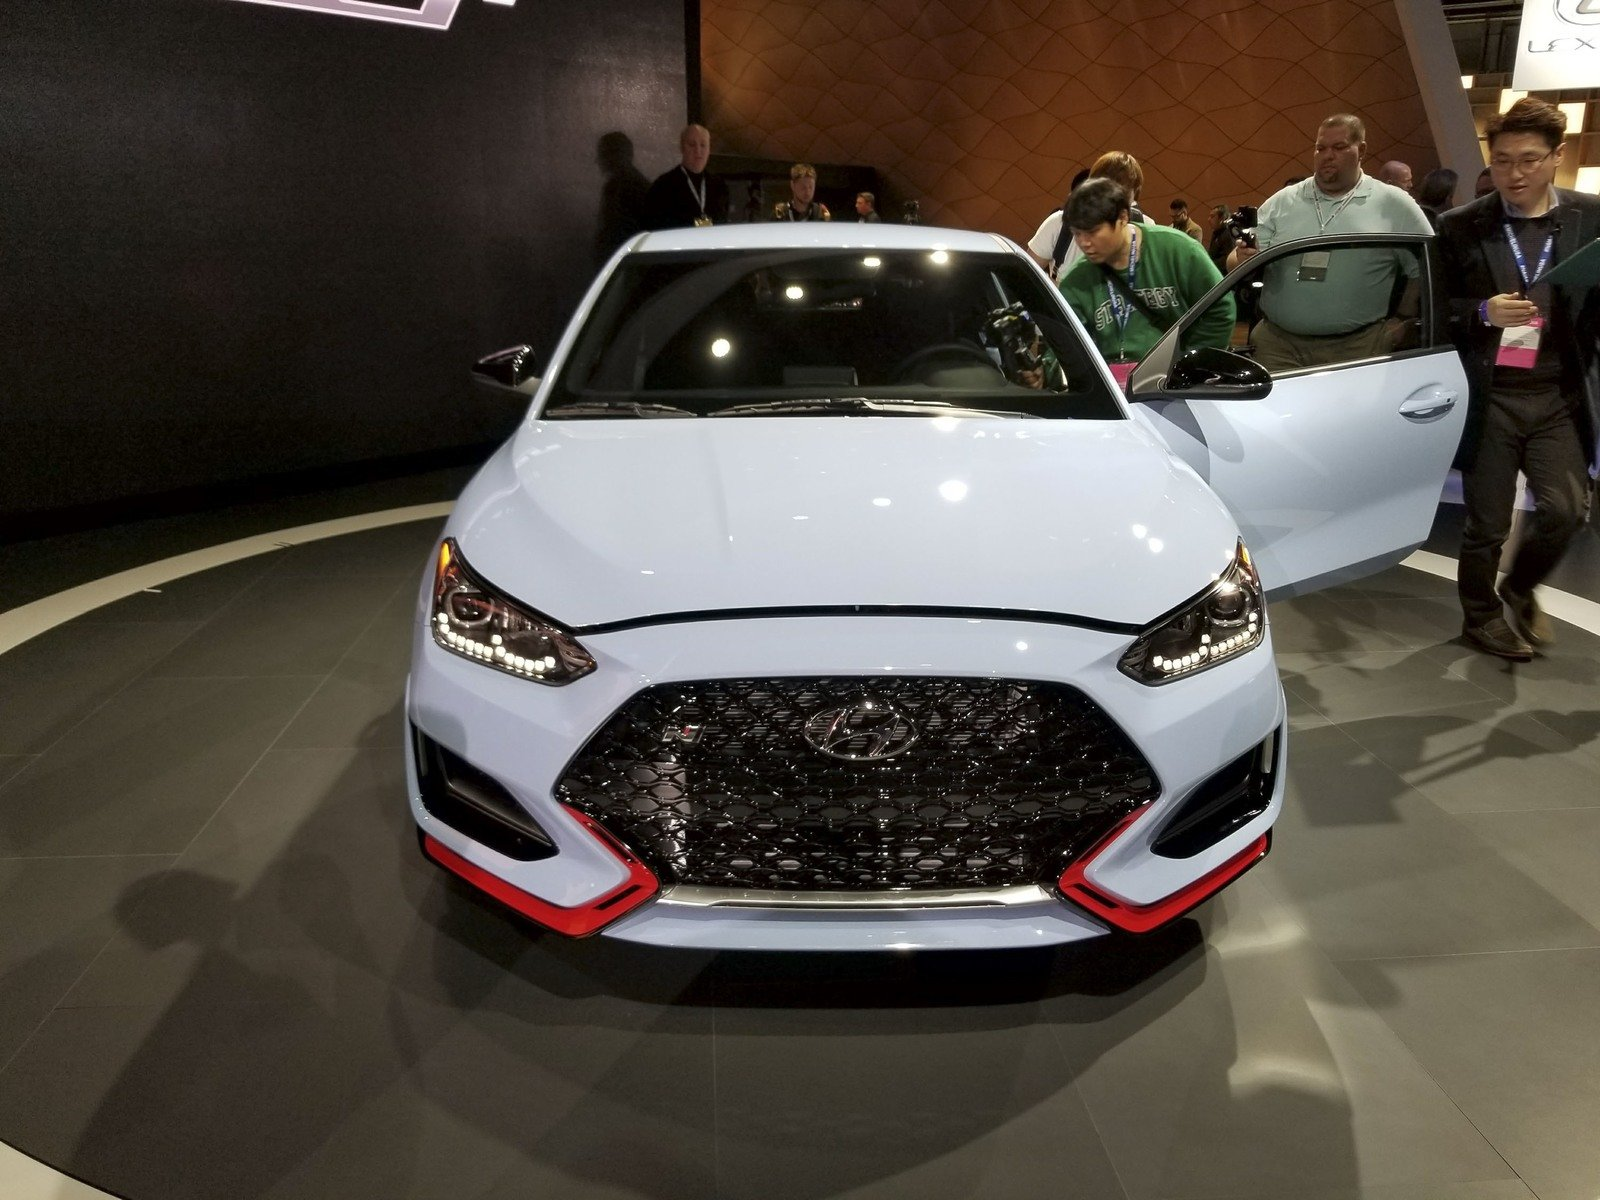 Photos and specifications of the new Hyundai F6 Photos and specifications of the new Hyundai F6  D9 88 D8 A7 D8 AC D9 87 D8 A9  D9 87 D9 8A D9 88 D9 86 D8 AF D8 A7 D9 8A  D9 81 D9 8A D9 84 D9 88 D8 B3 D8 AA D8 B1 N 2019